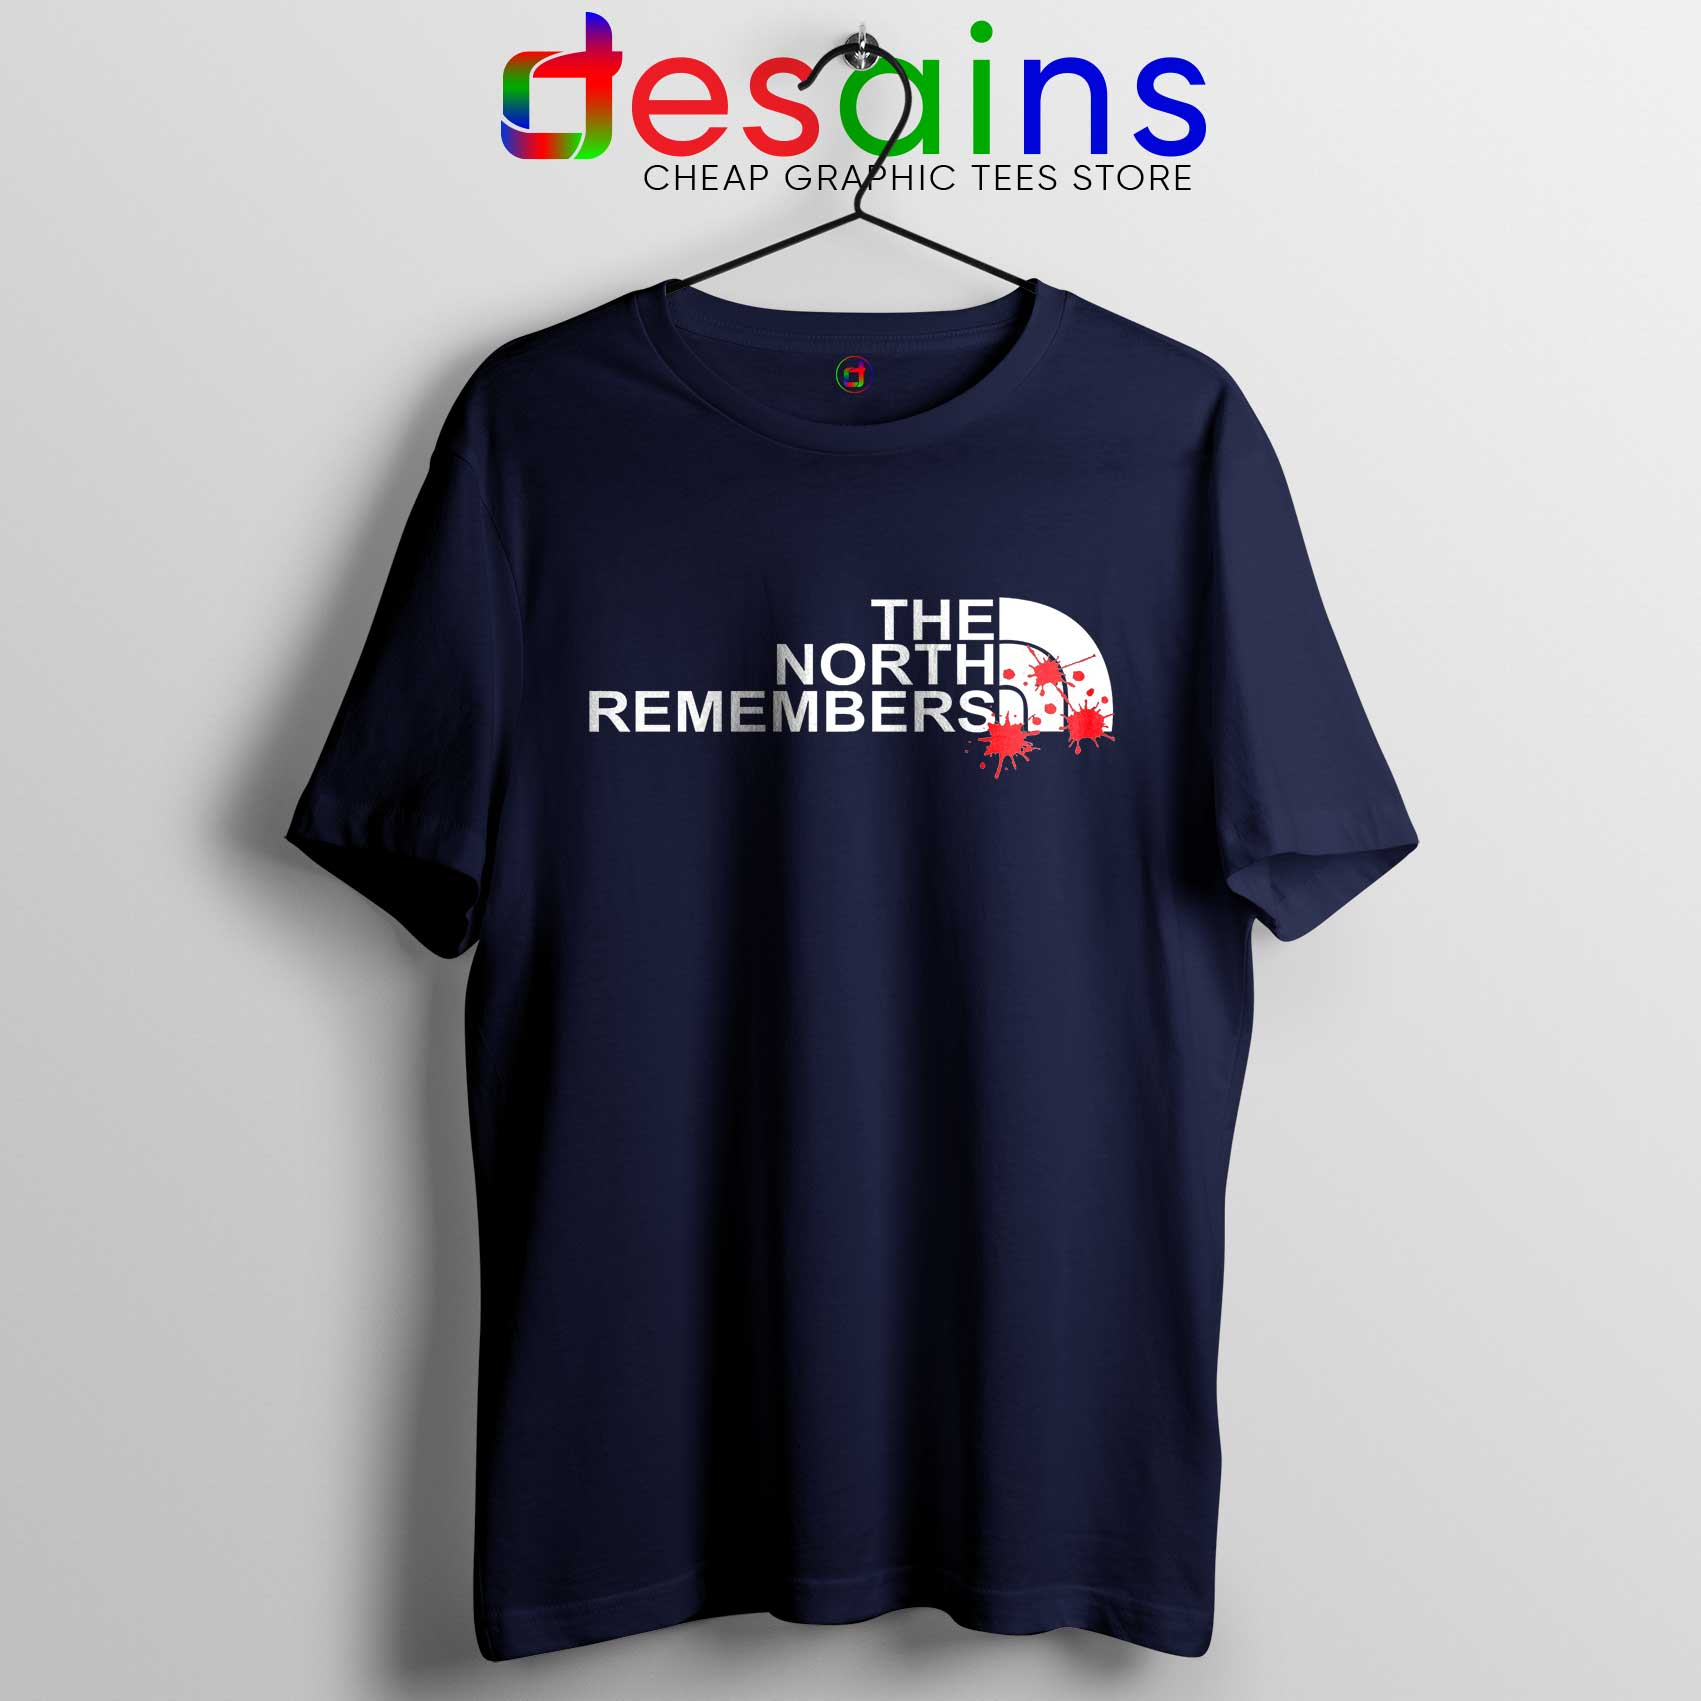 9e358d1bc Tee Shirt The North Remembers The North Face Tshirt Game of Thrones